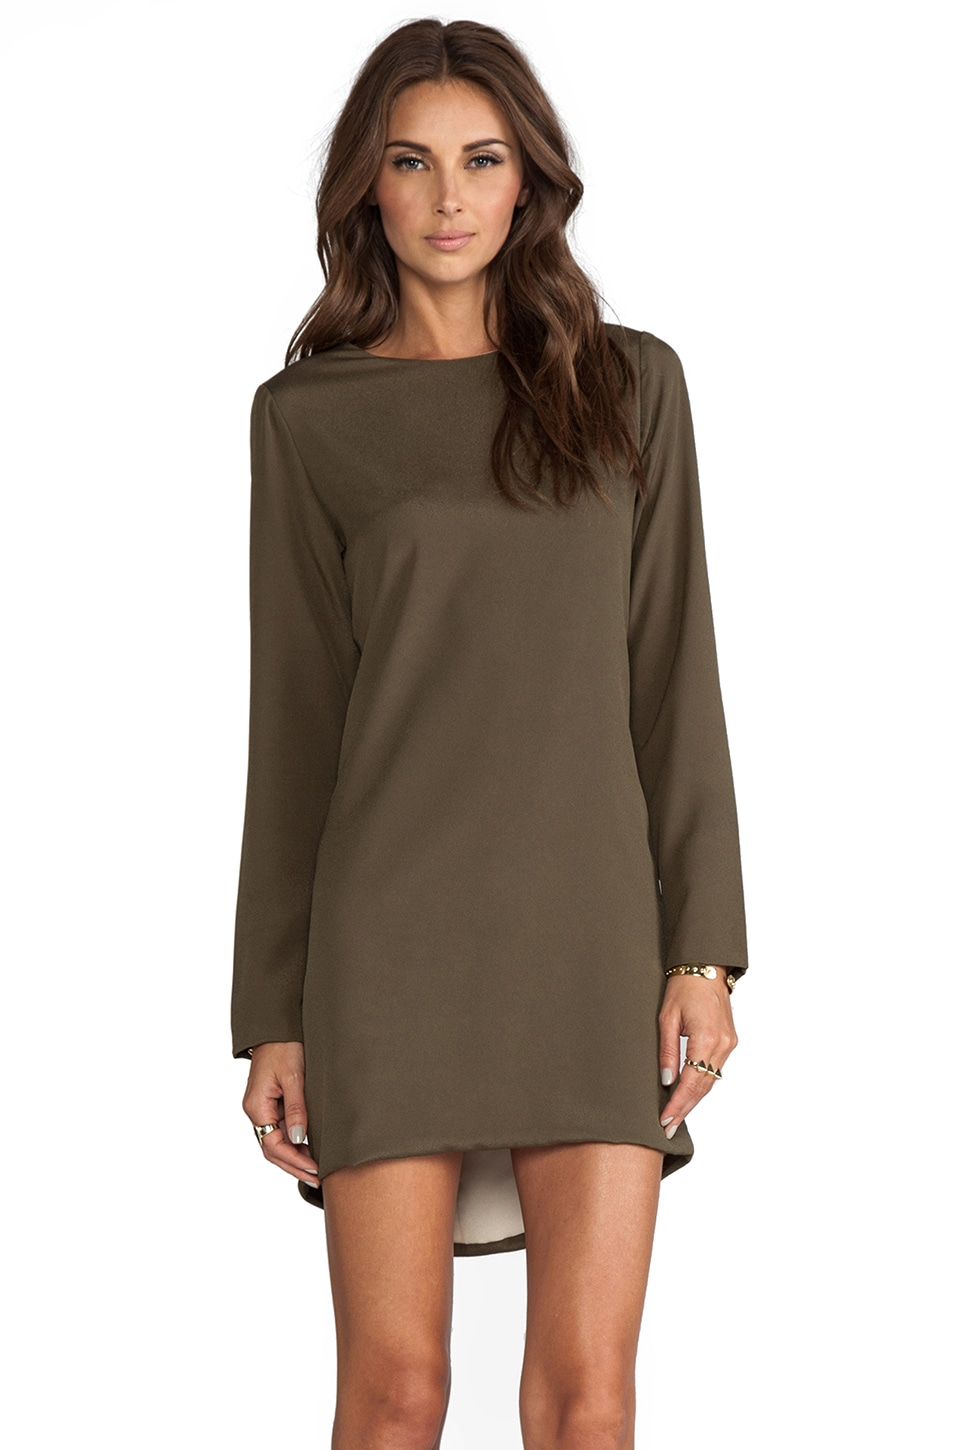 Naven Twiggy Dress in Army